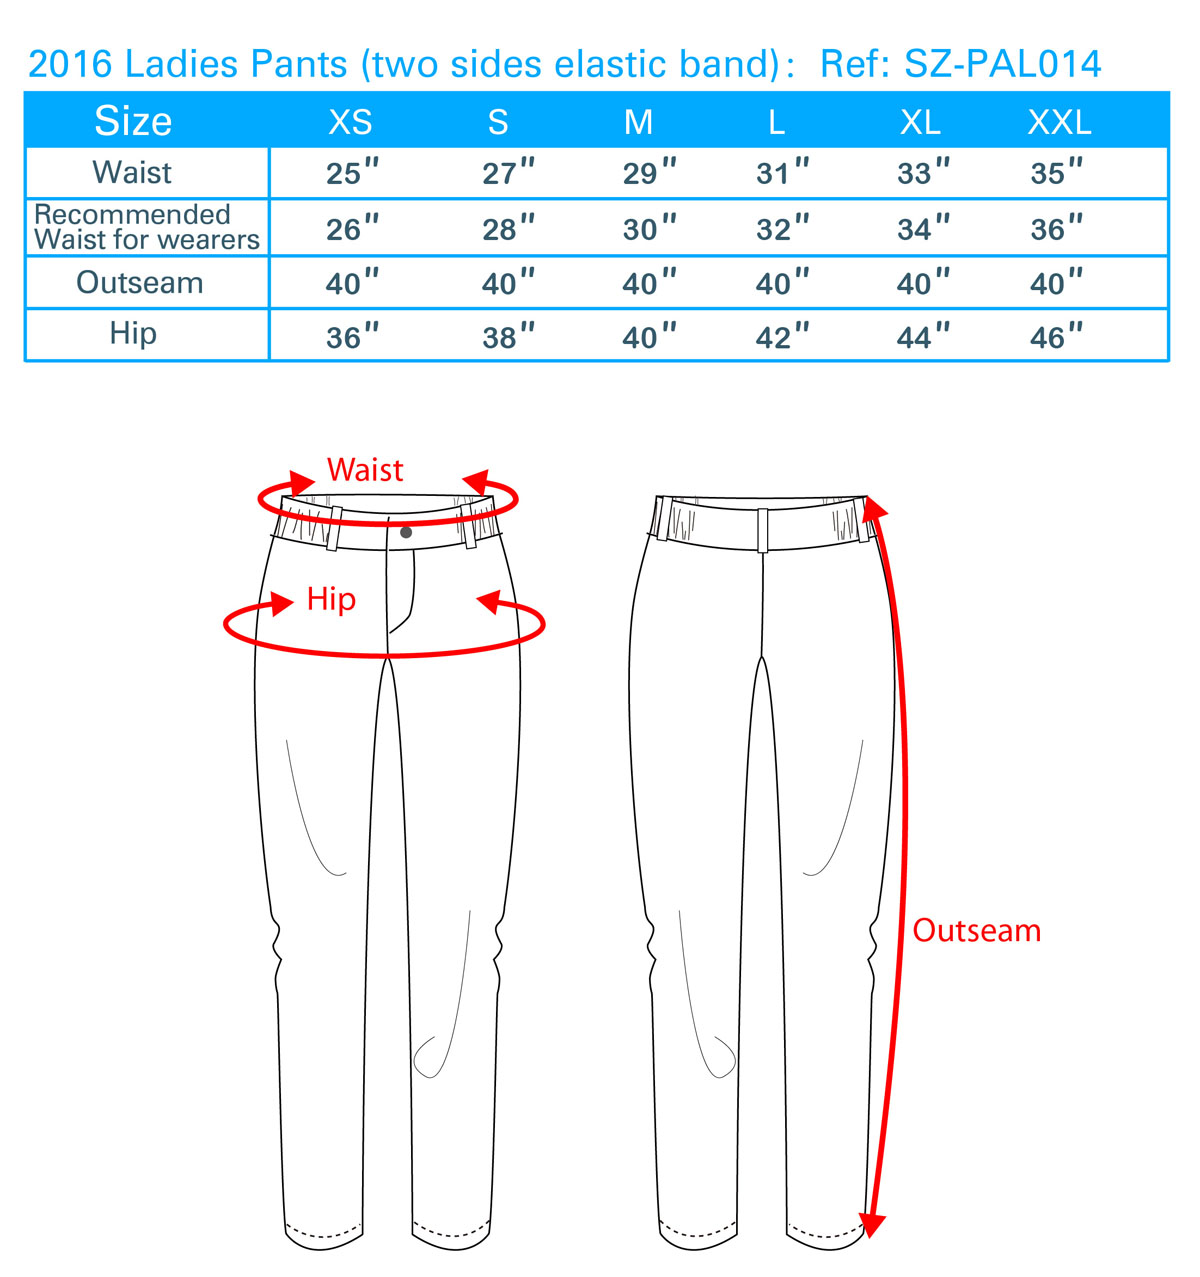 2016 Ladies Pants (two sides elastic band)